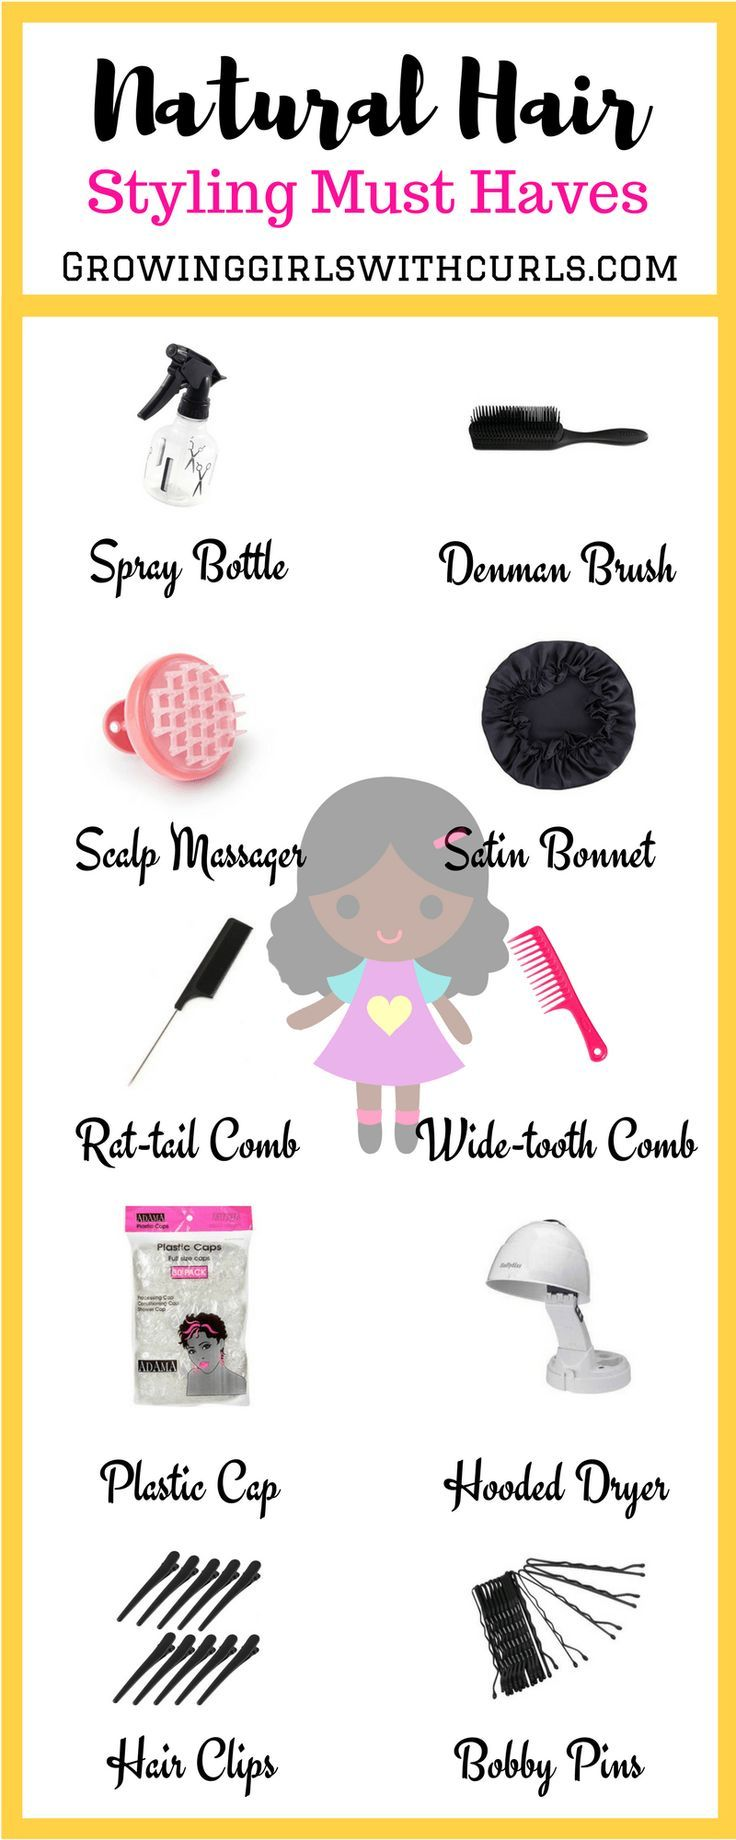 Natural Hair Styling Must Haves #naturalhaircare